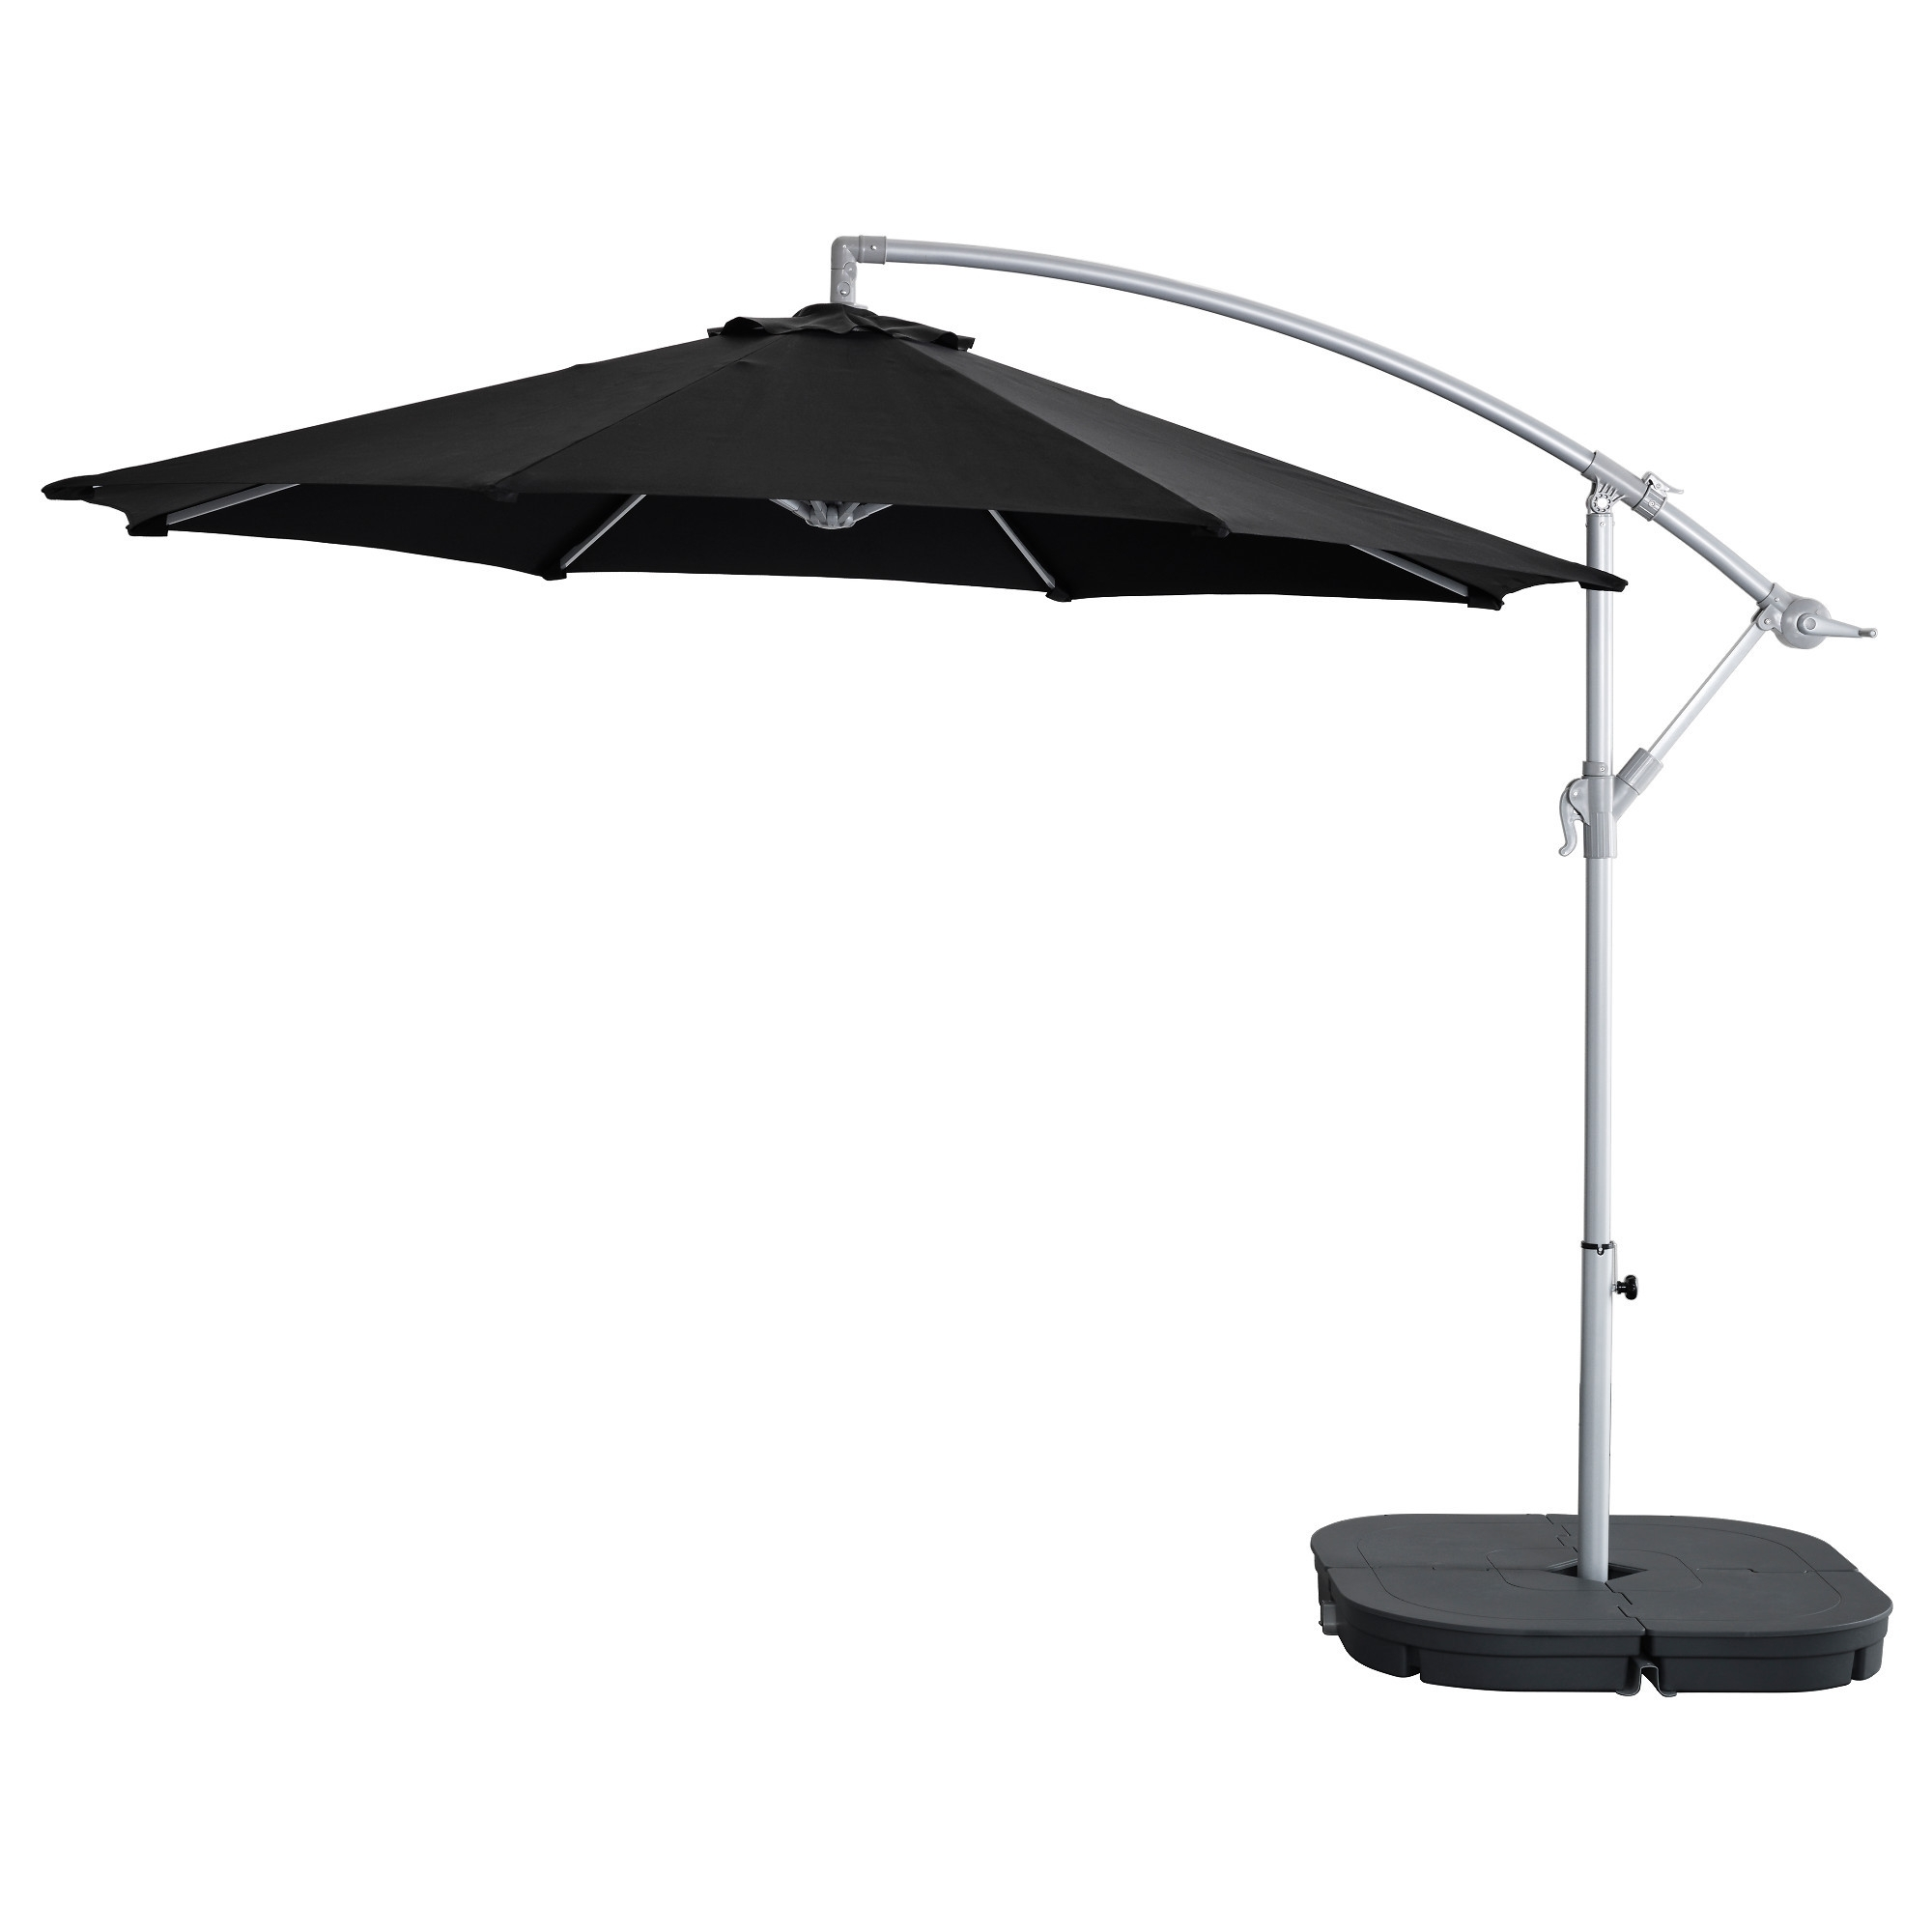 Ikea Patio Umbrellas With Popular Patio Umbrella Side Table New Coffee Tables Small Outdoor Coffee (View 11 of 20)